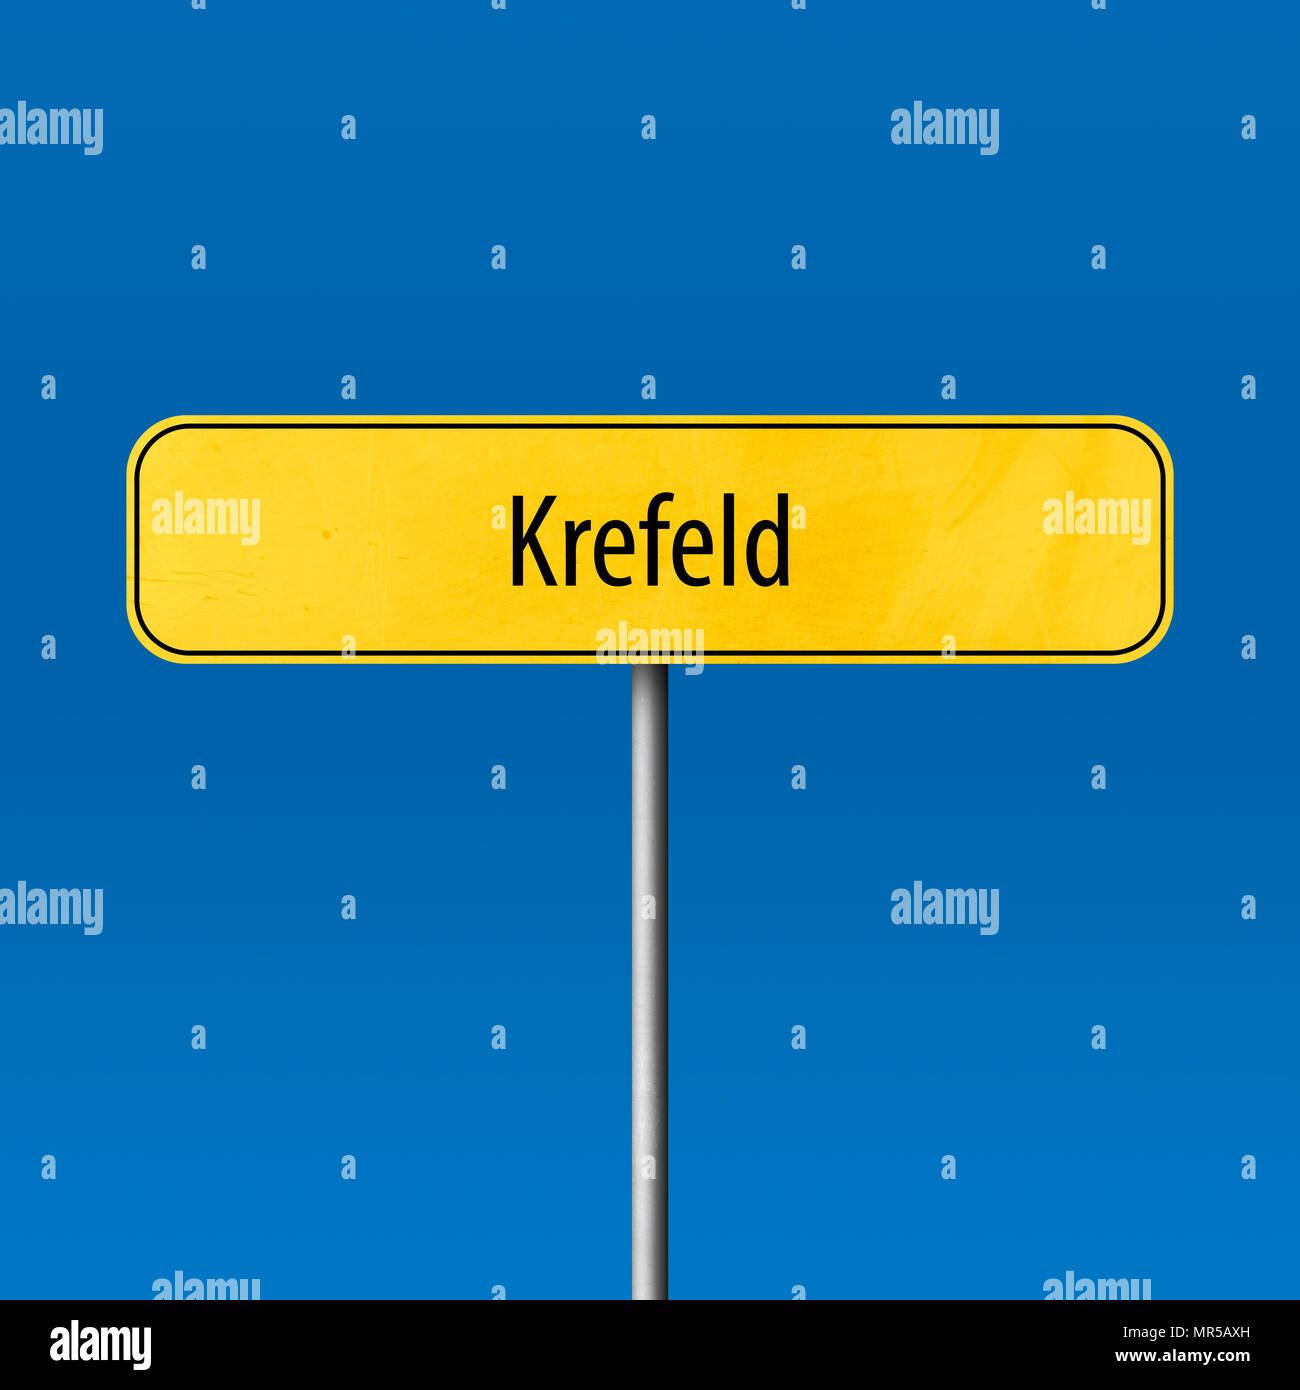 Krefeld - town sign, place name sign - Stock Image